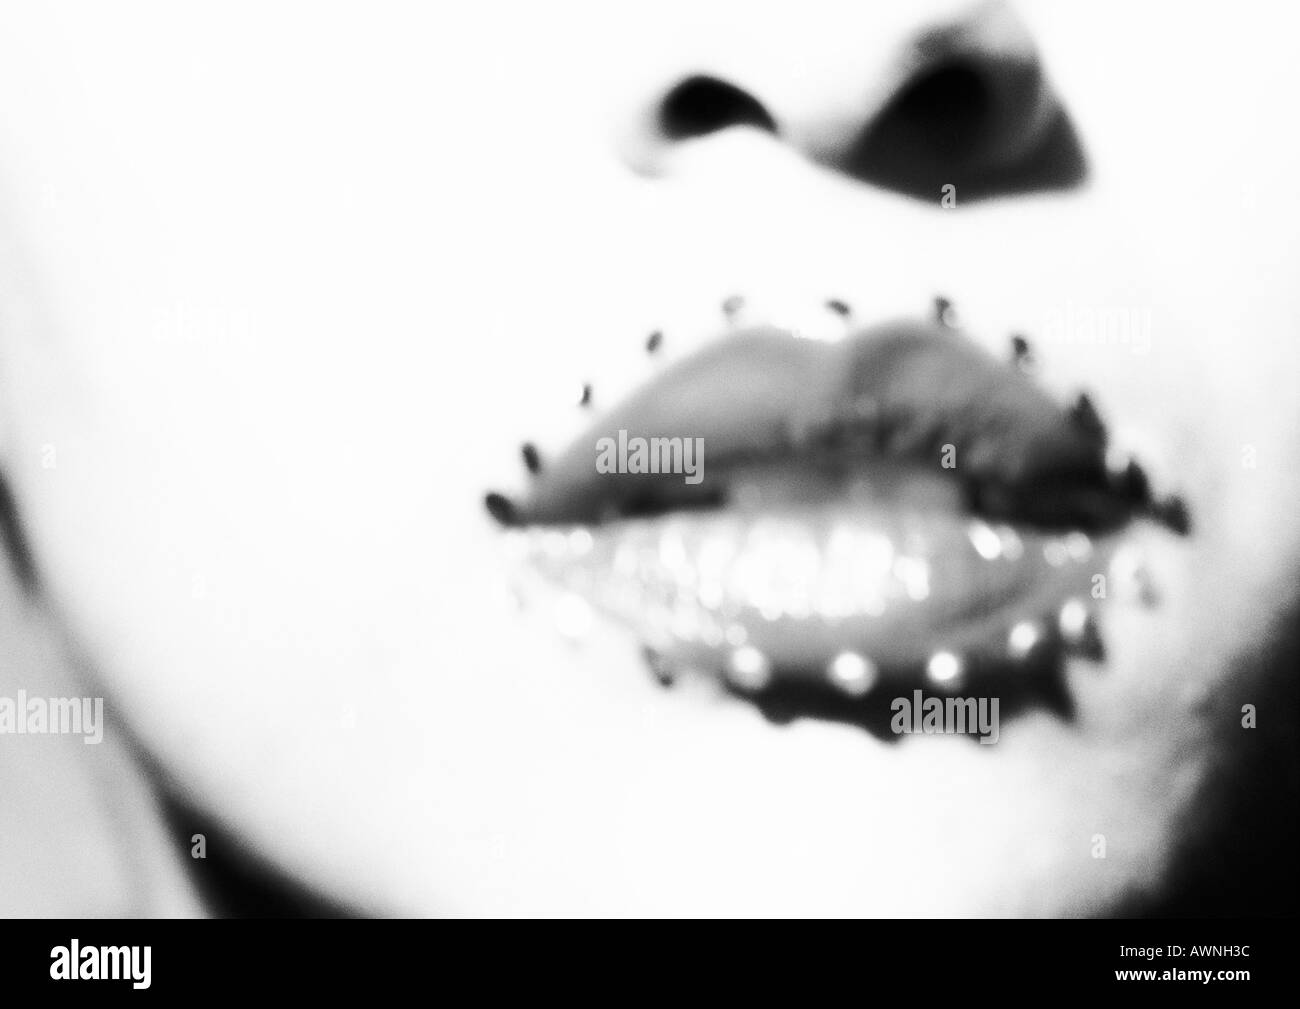 Woman's mouth with jewel adornments, close up of lower face, black and white, blurred. - Stock Image